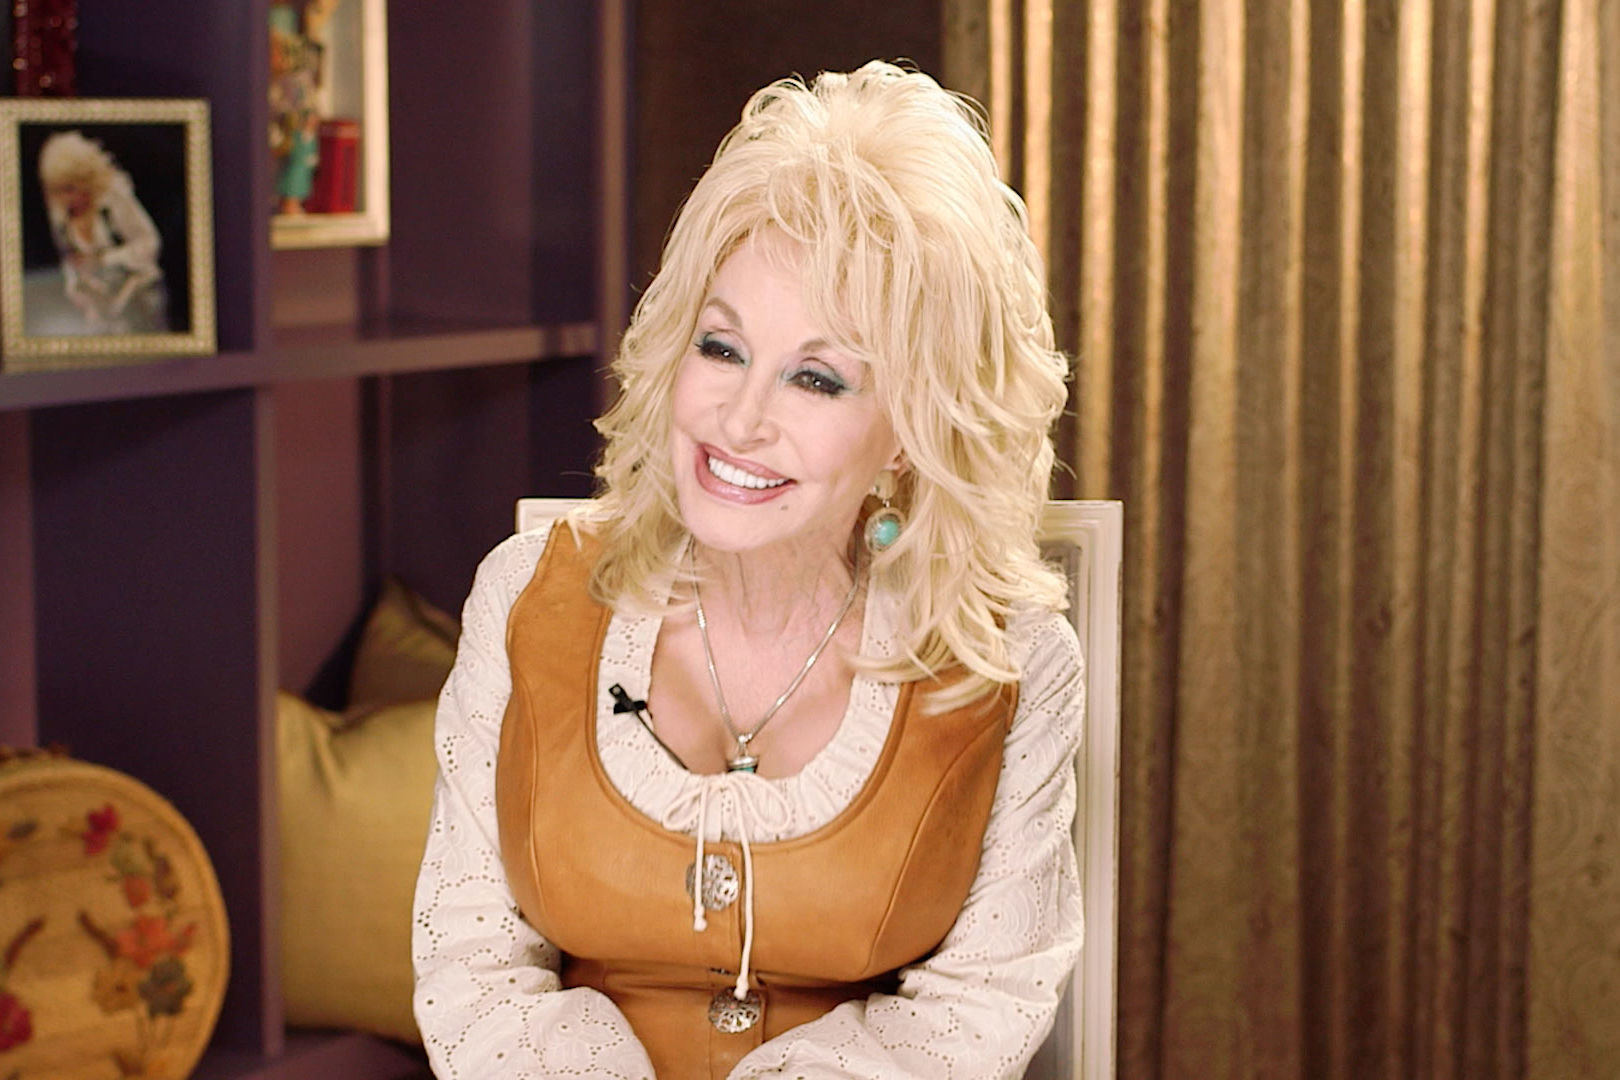 WATCH: Dolly Parton Visits Superhero Kids at Vanderbilt's Children's Hospital